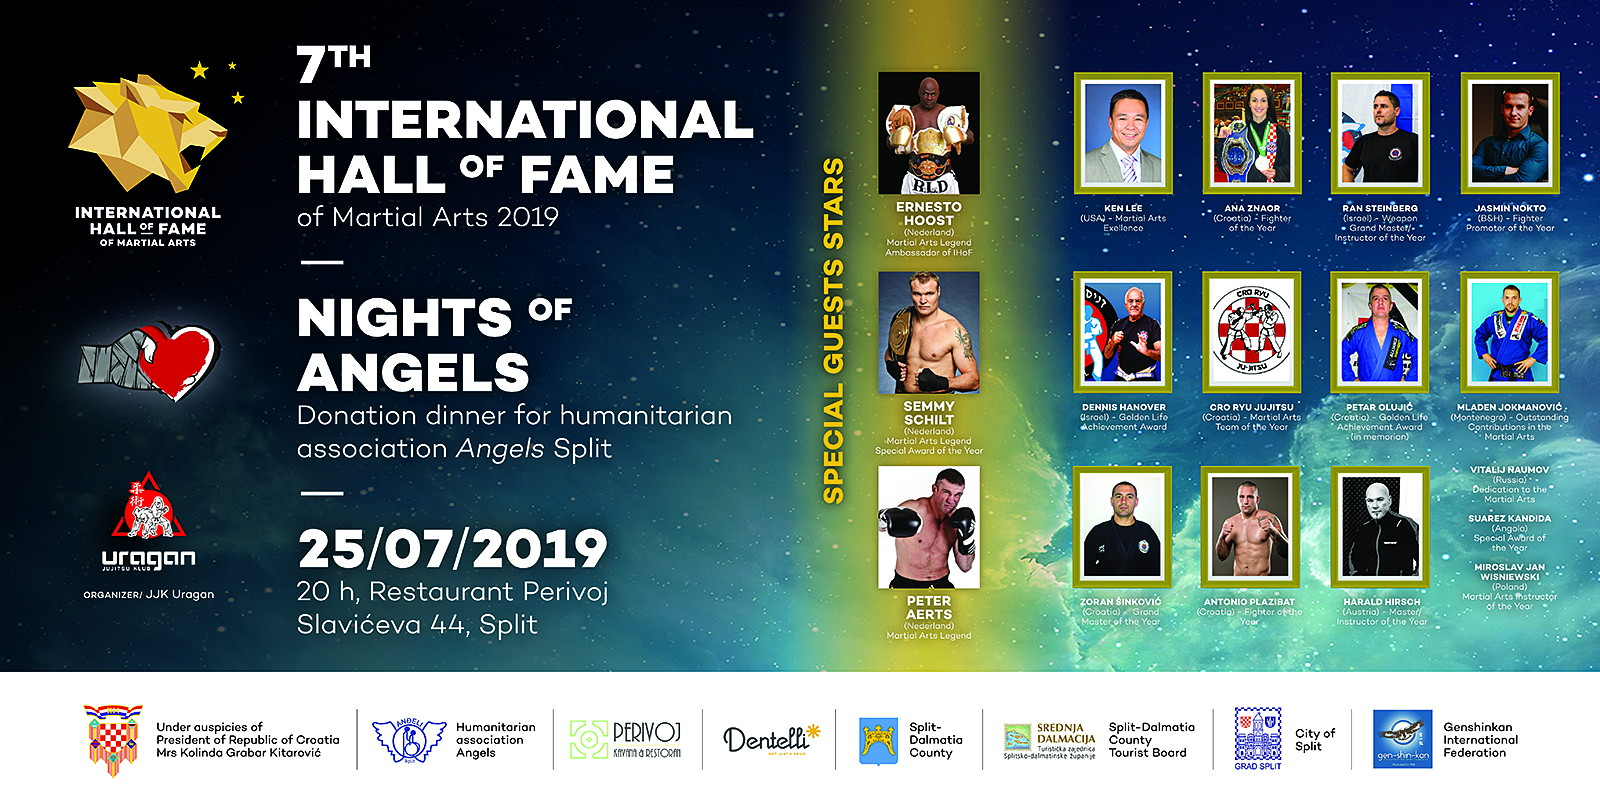 International Hall of Fame of Martial Arts